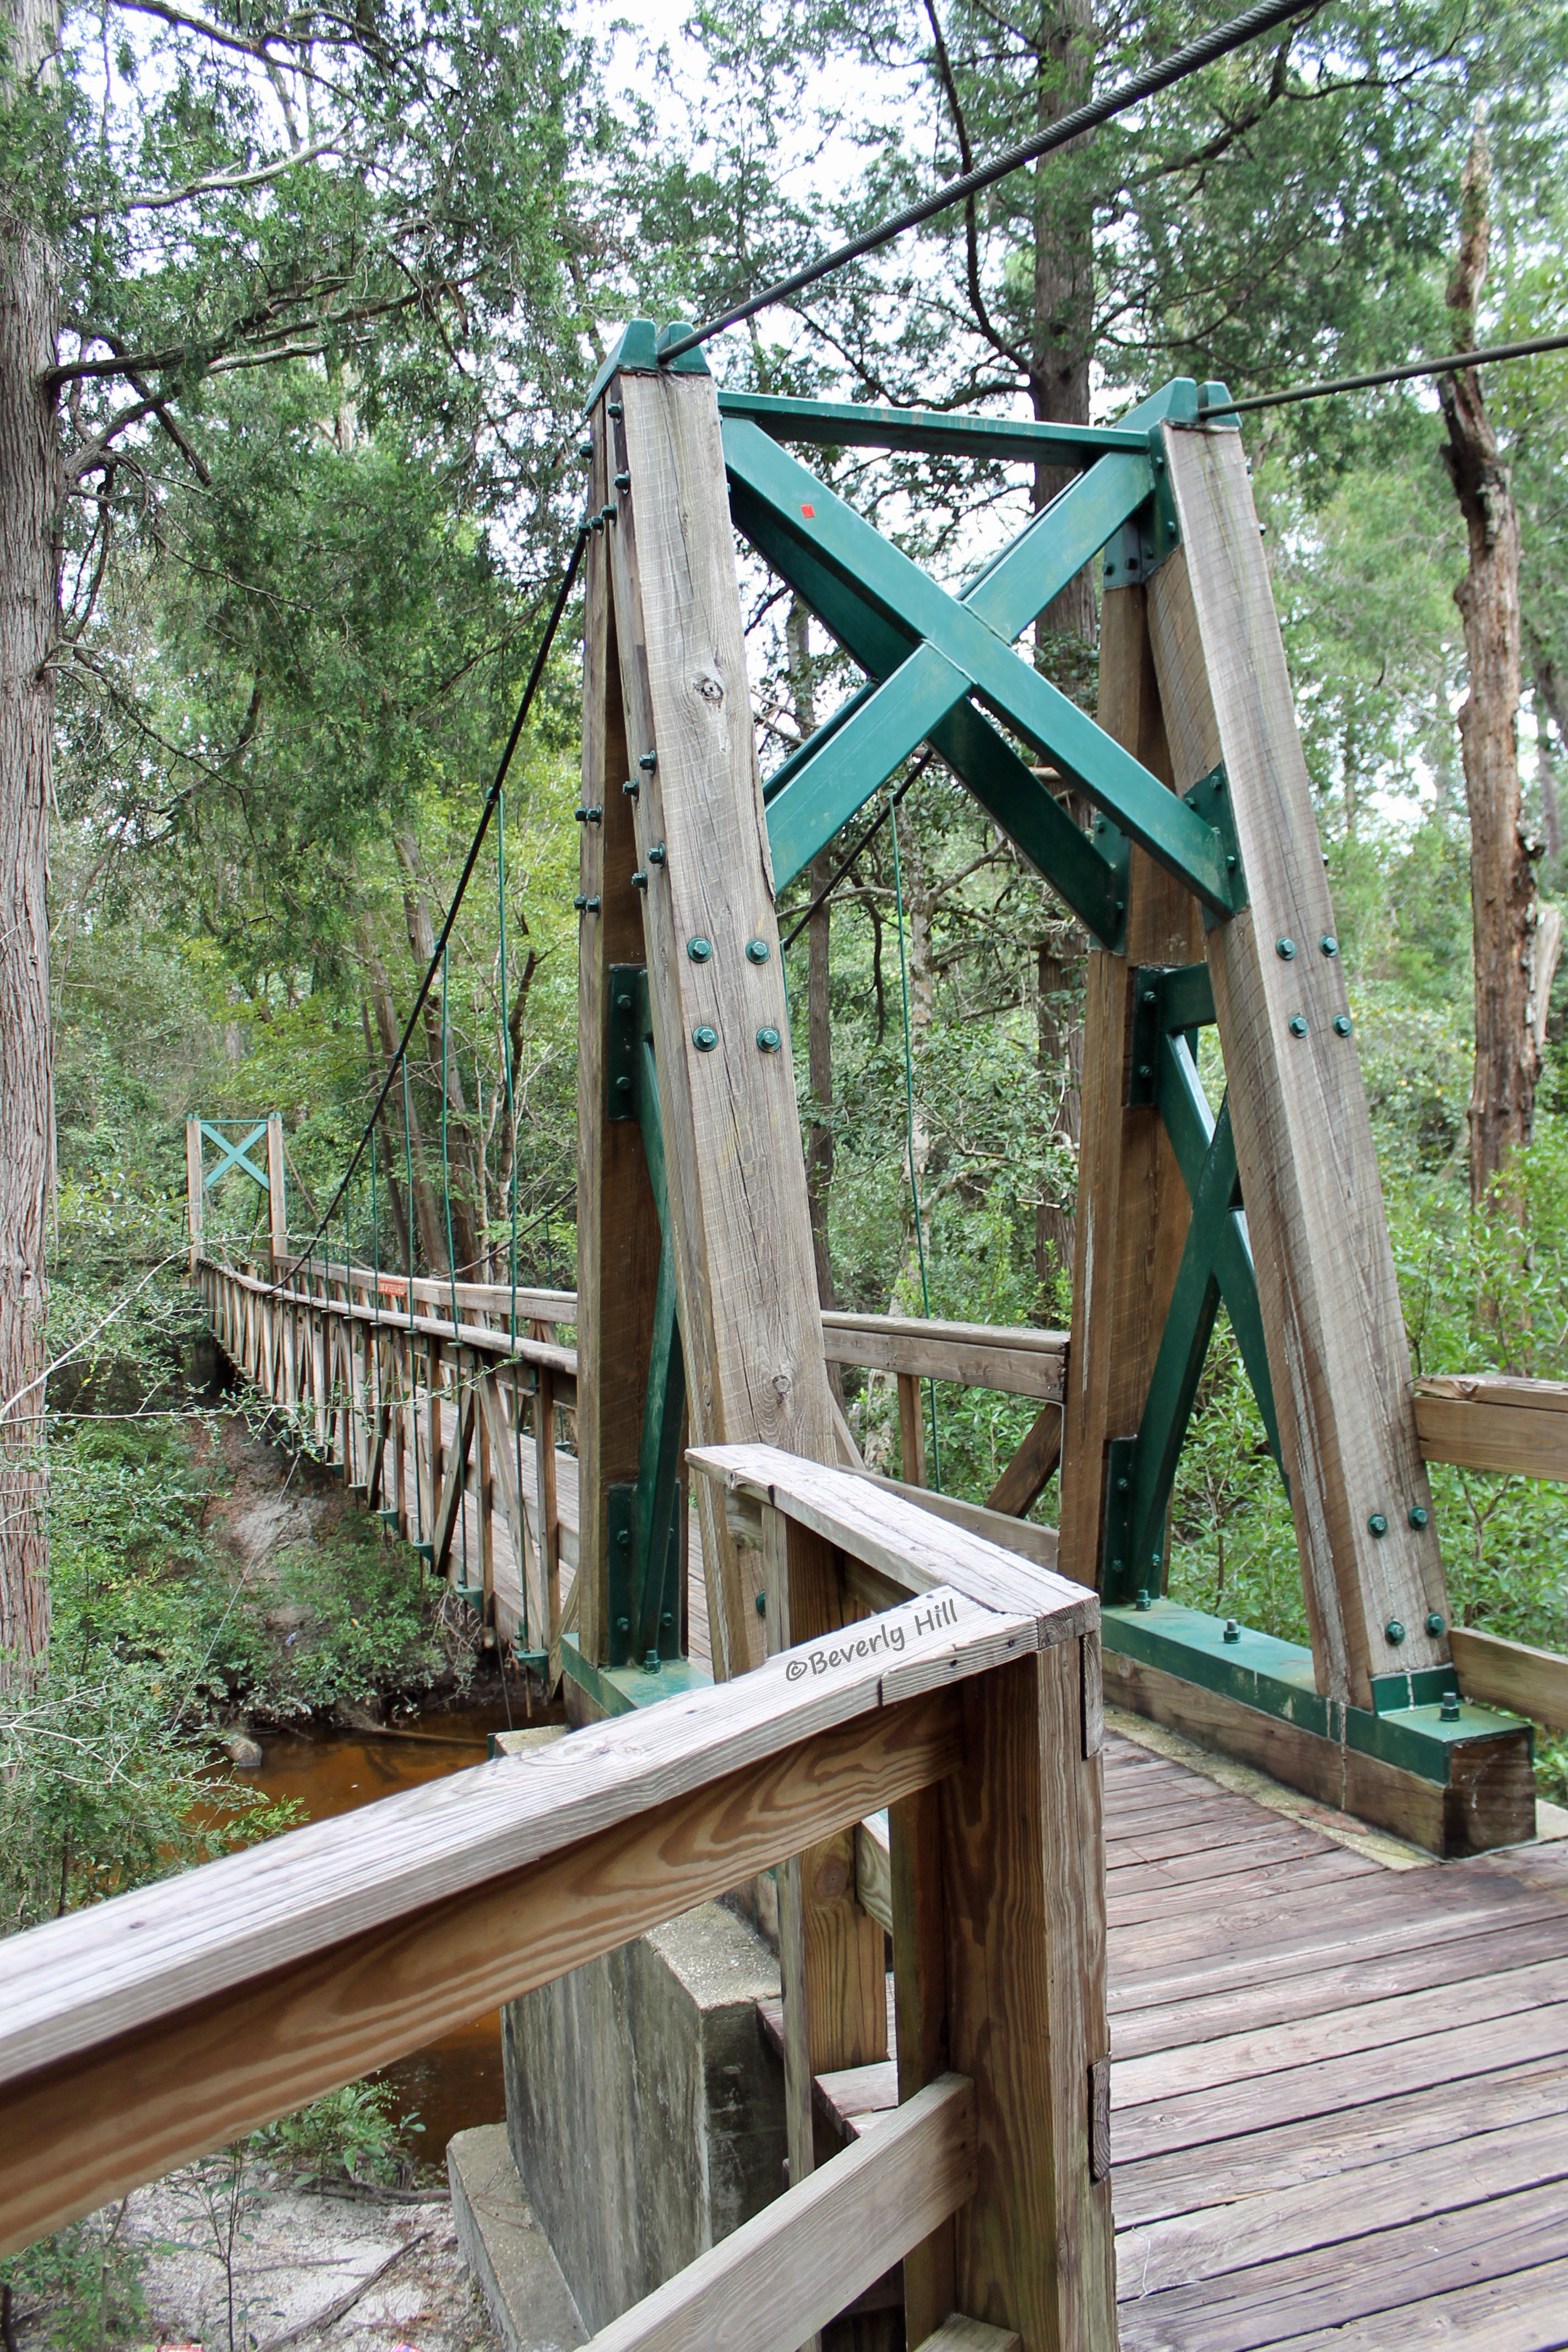 Hiking on the Sweetwater Trail in Blackwater River State